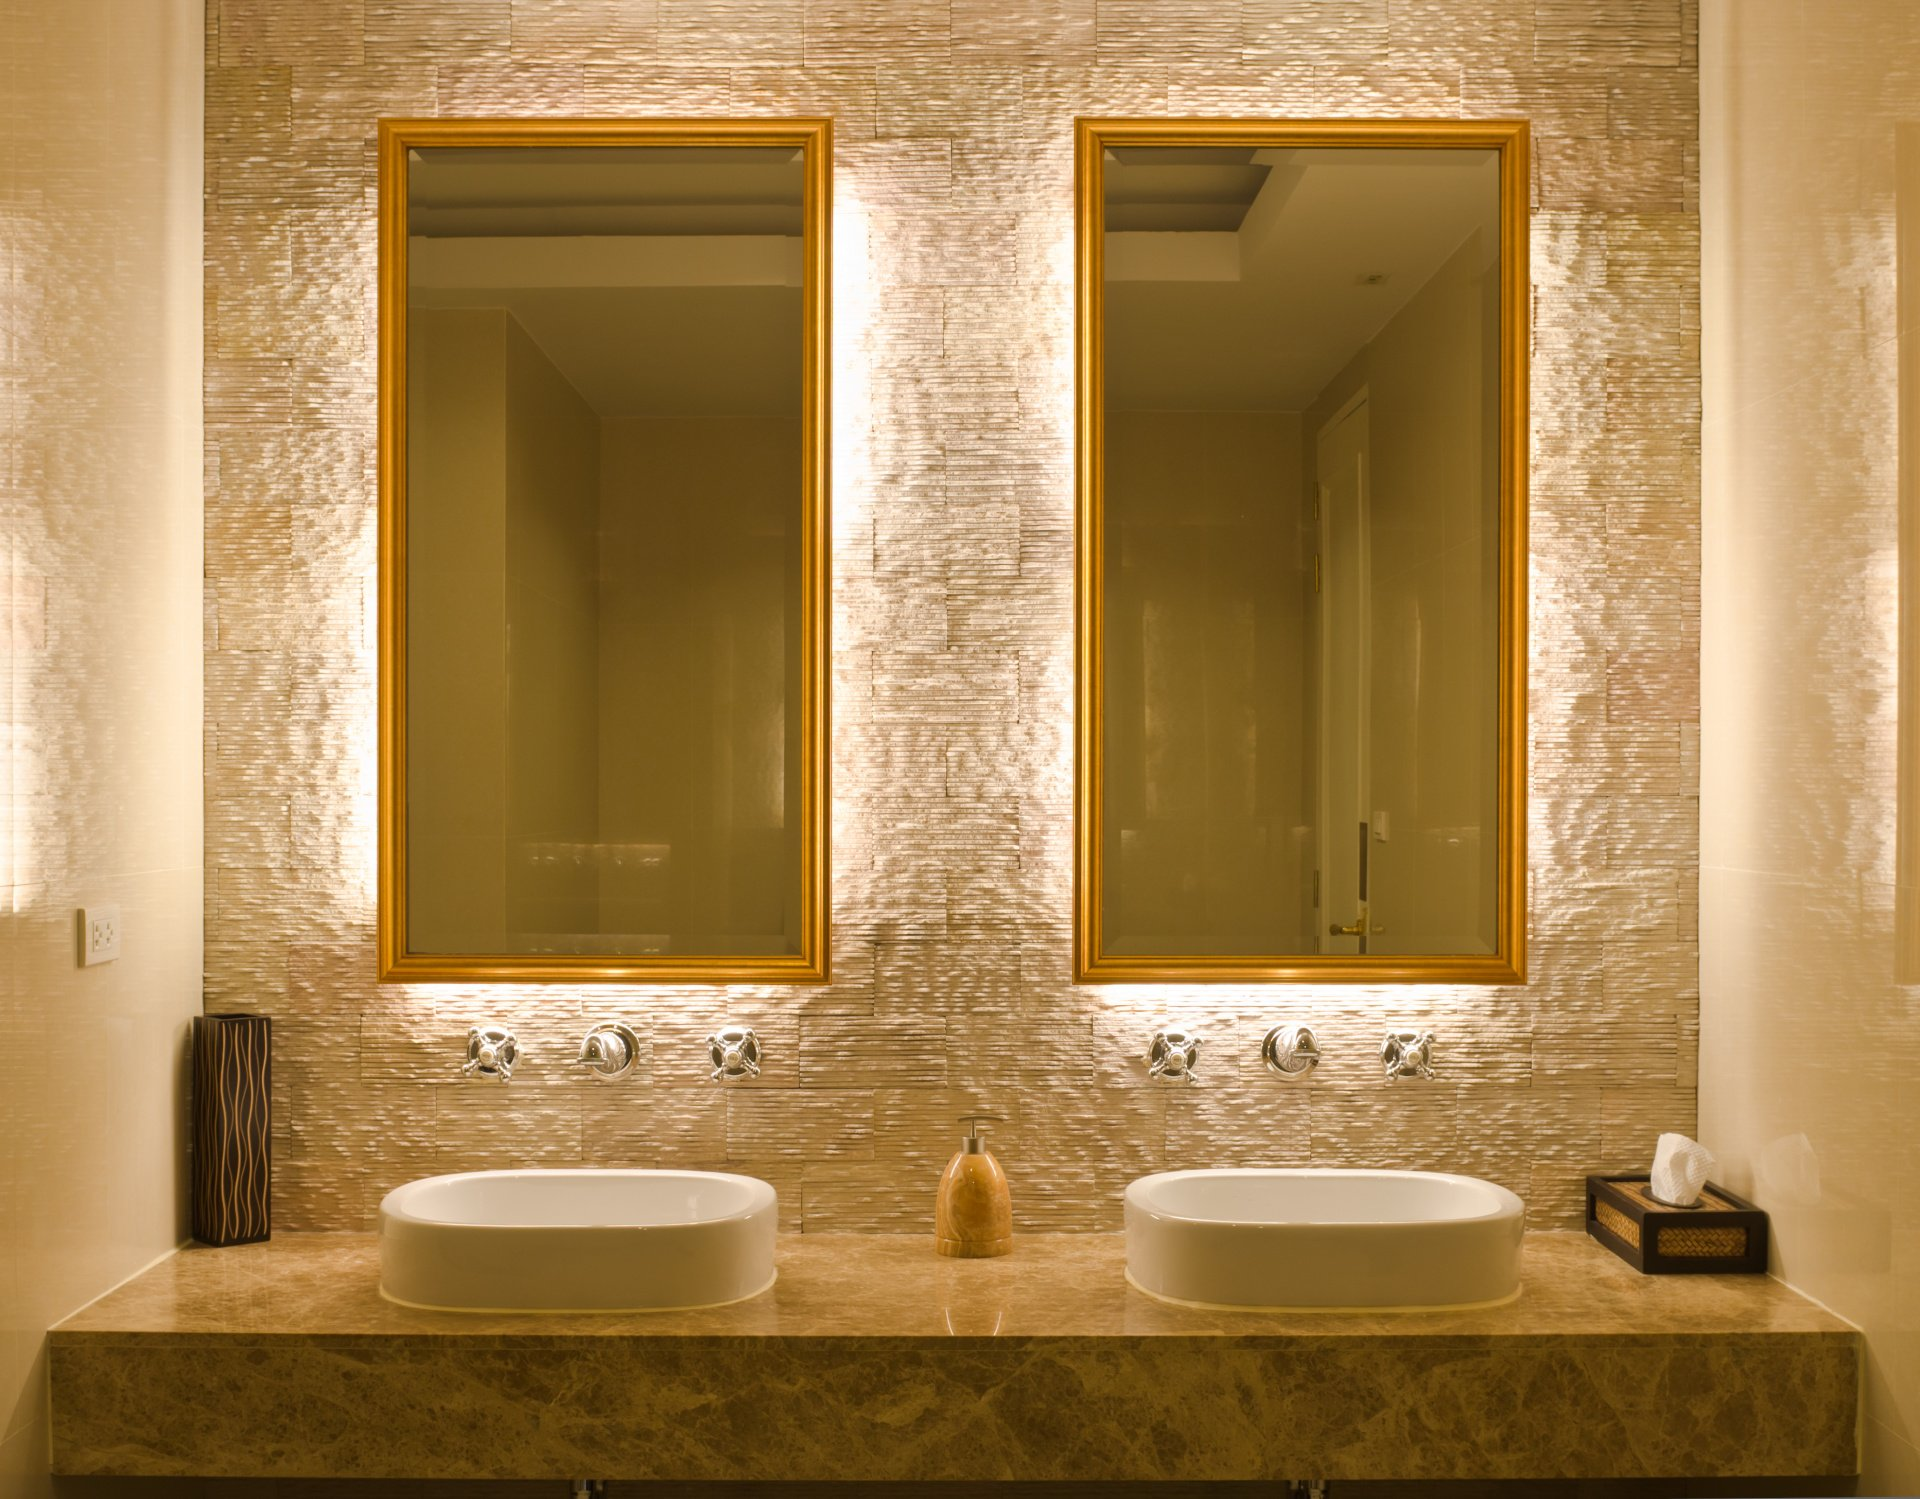 Terrific Lighted Bathroom Mirrors Are They Worth The Cost Download Free Architecture Designs Scobabritishbridgeorg